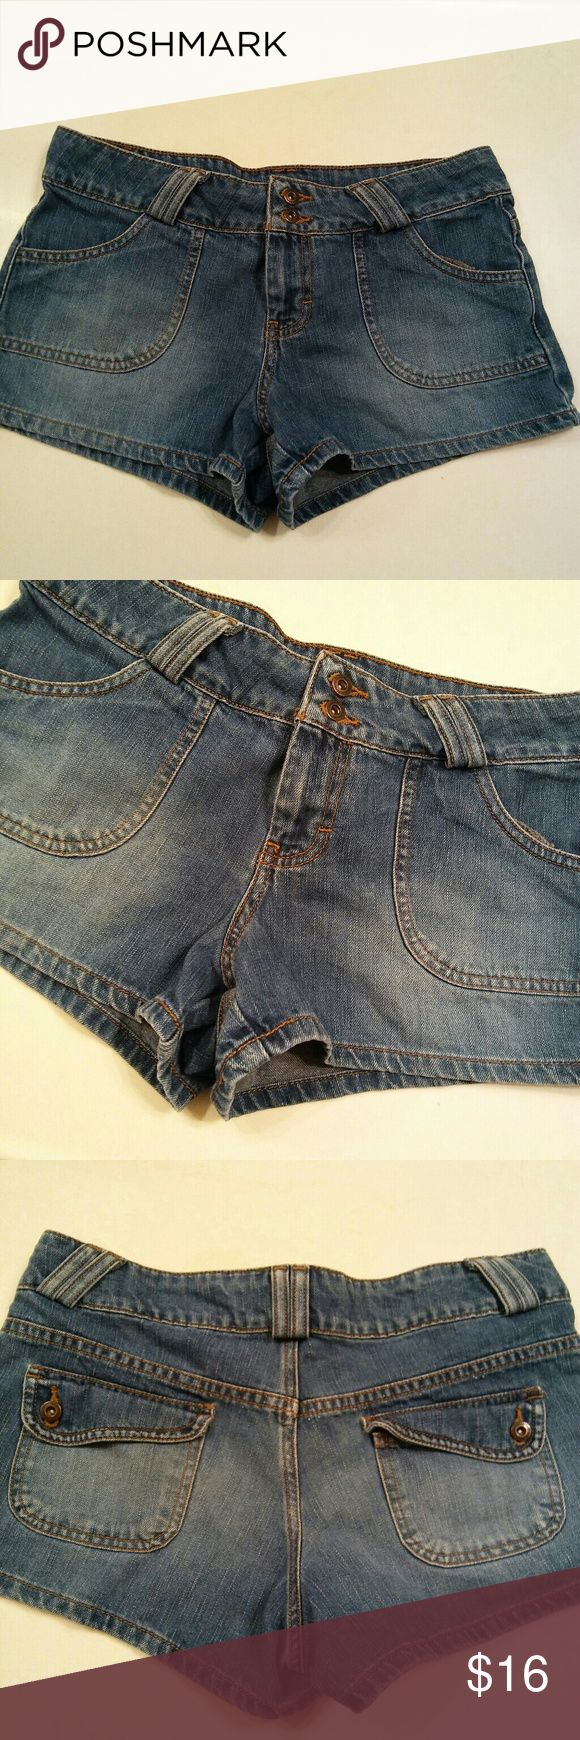 American Eagle Outfitters Jean Shorts Size 4 American Eagle Outfitters Jean shorts. Barely used and in excellent condition. American Eagle Outfitters Shorts Jean Shorts